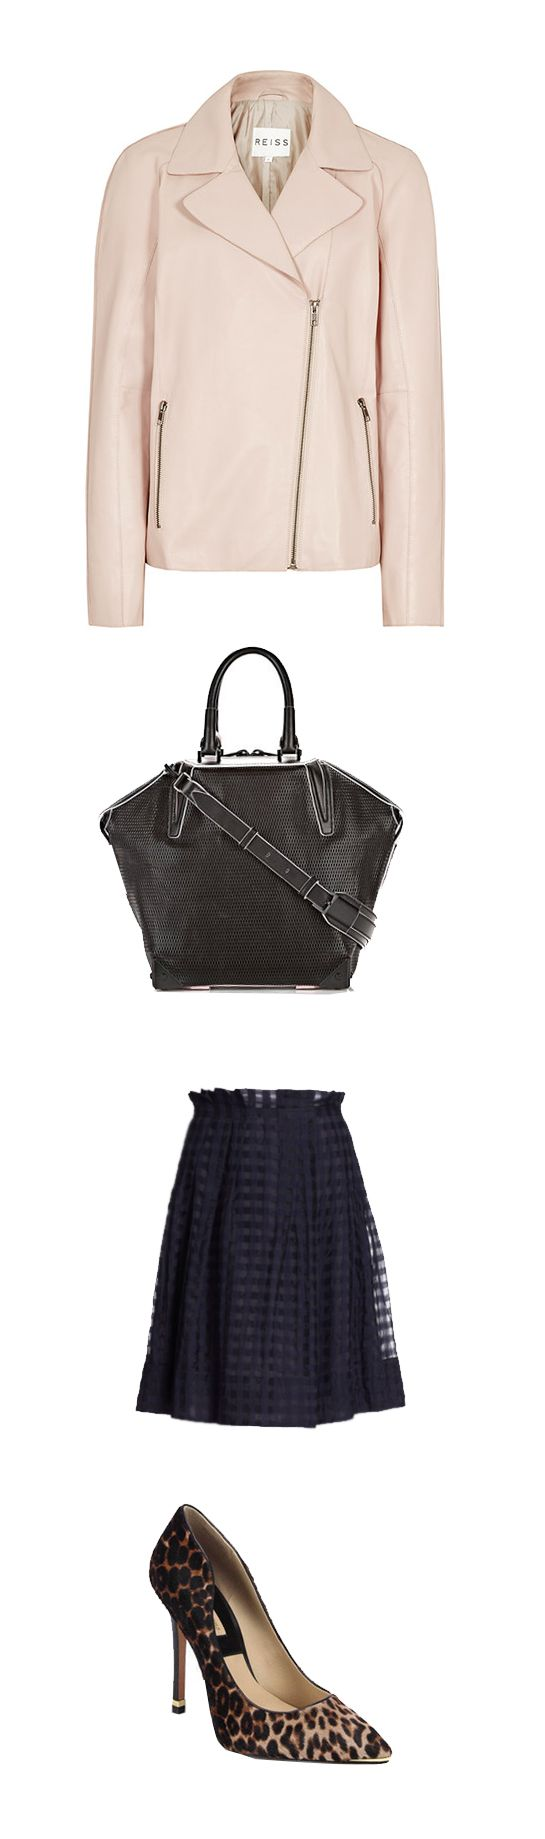 Margo & Me picked some beautiful Saturday essentials. Jacket by Reiss, bag by Alexander Wang, pumps by Michael Kors, skirt by Piazza Sempione.